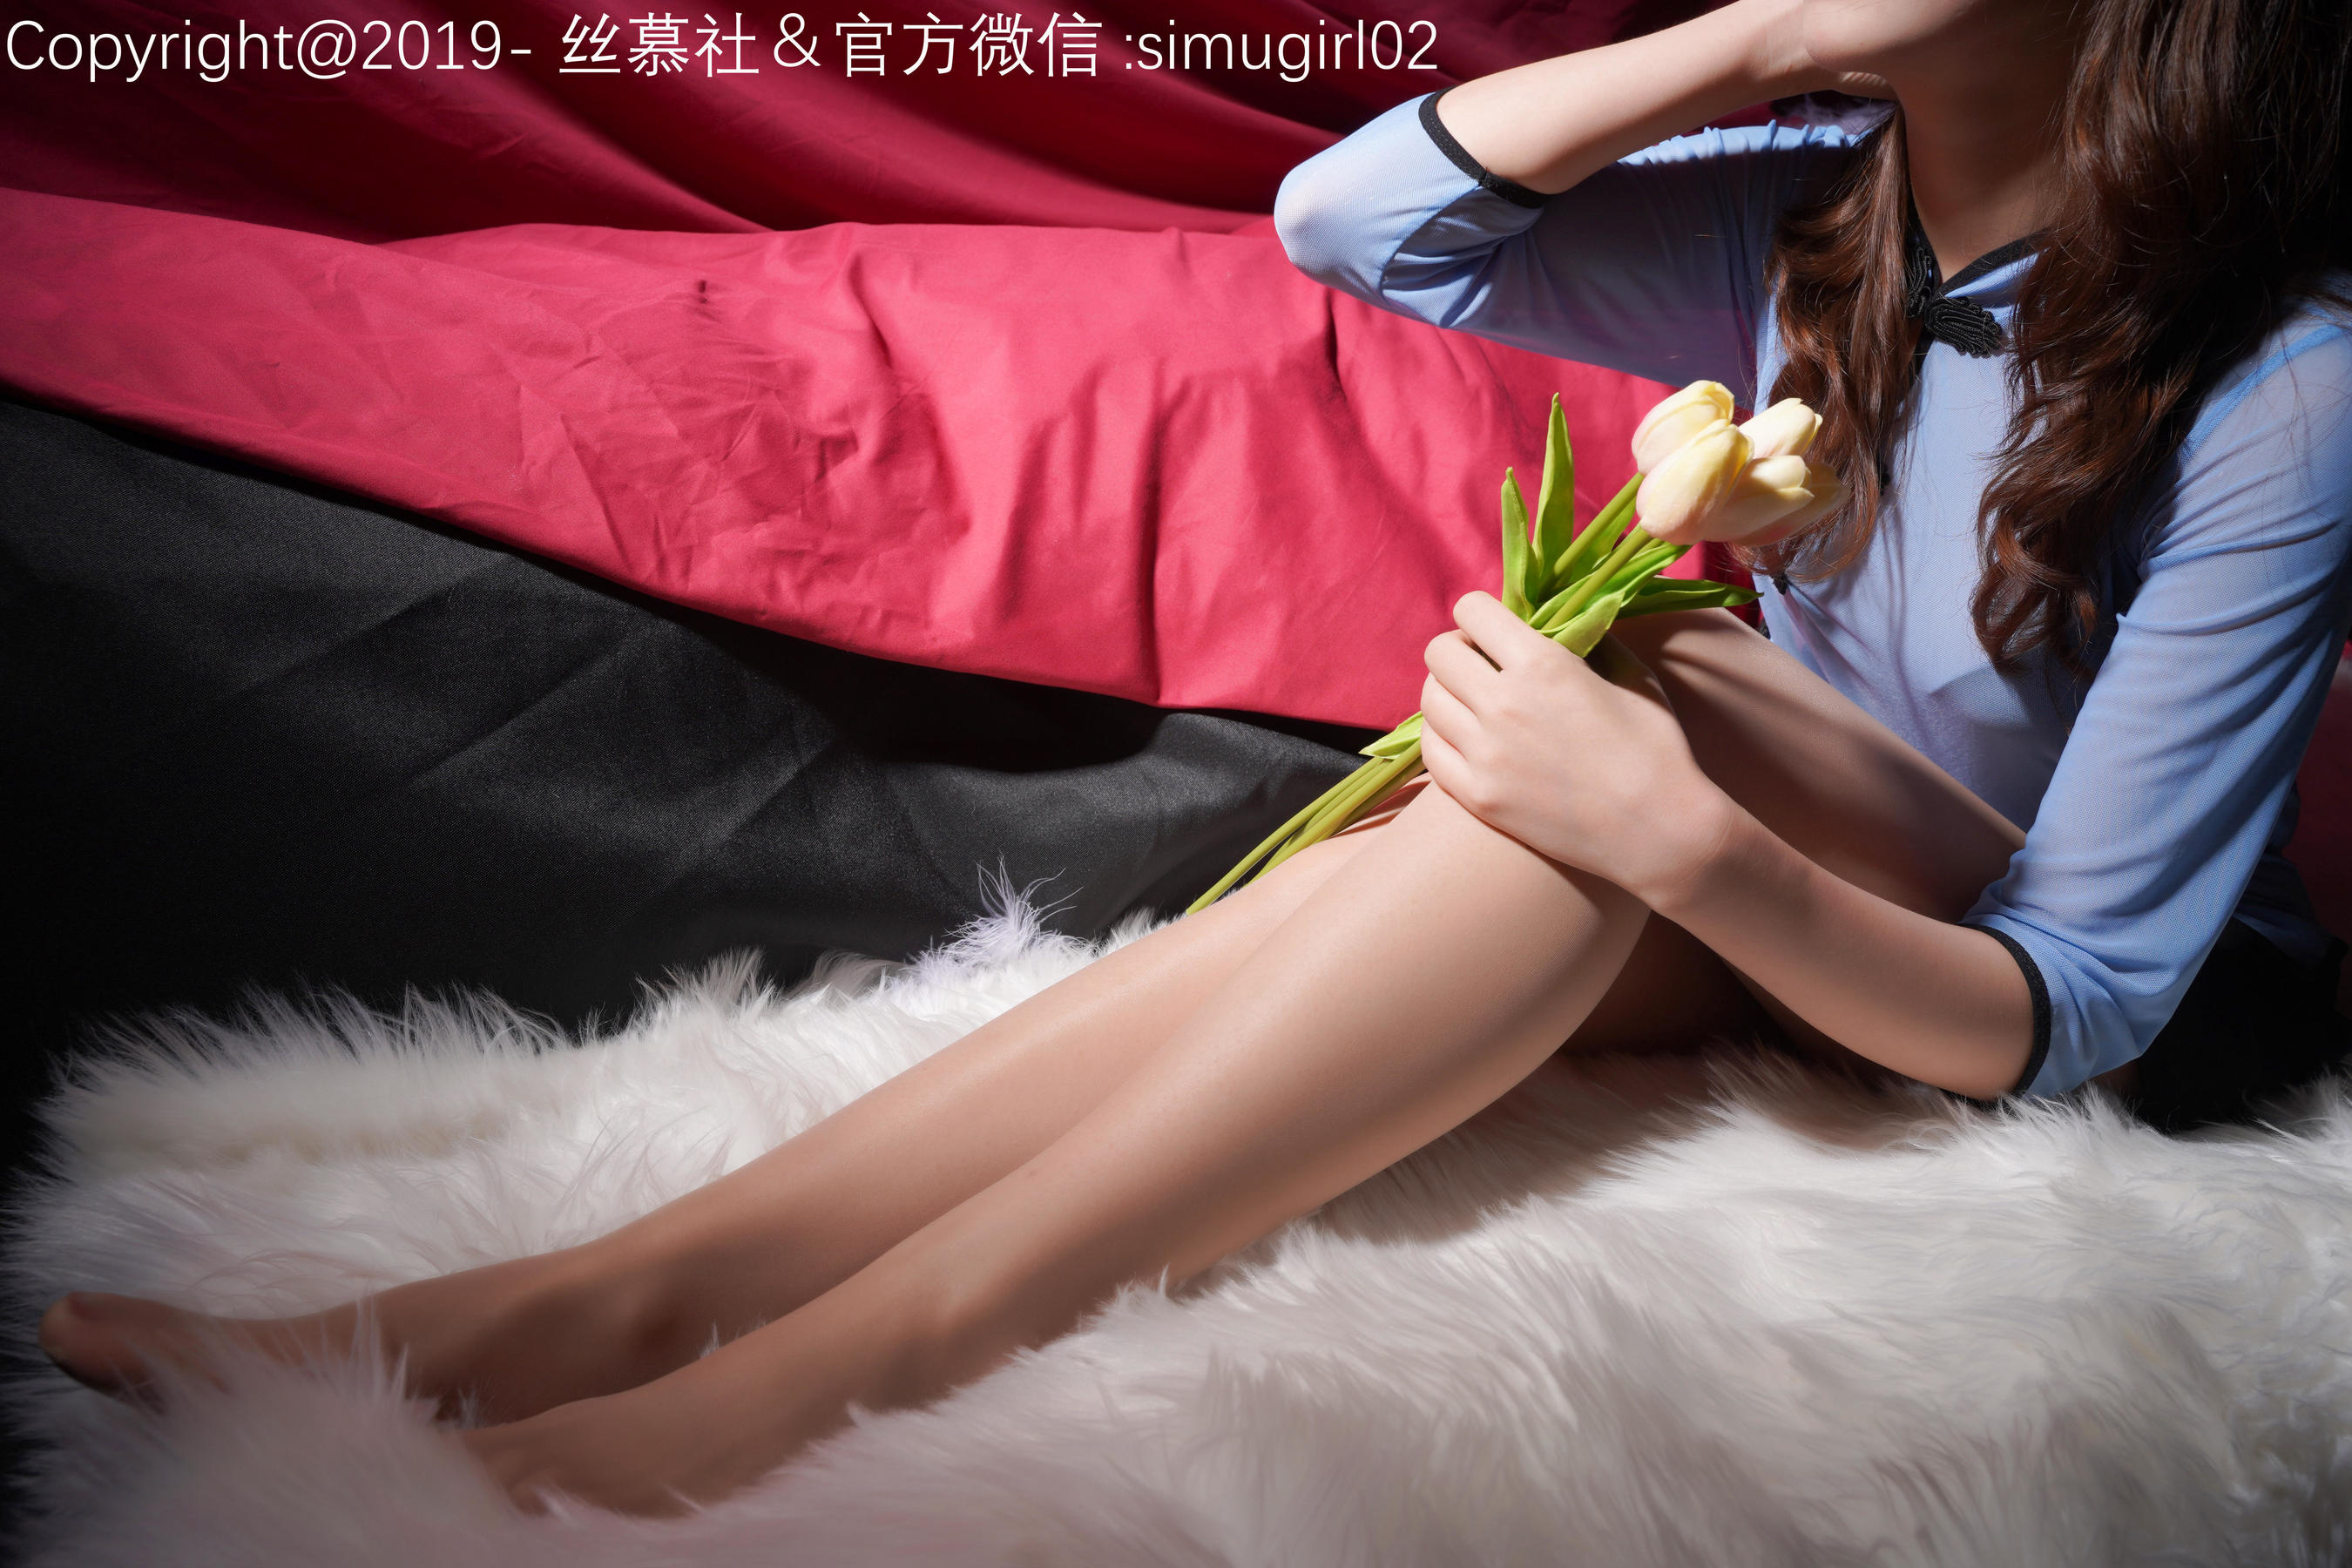 """[Simu] SM016 Linlin-""""The Goddess of the Republic of China"""" 62"""